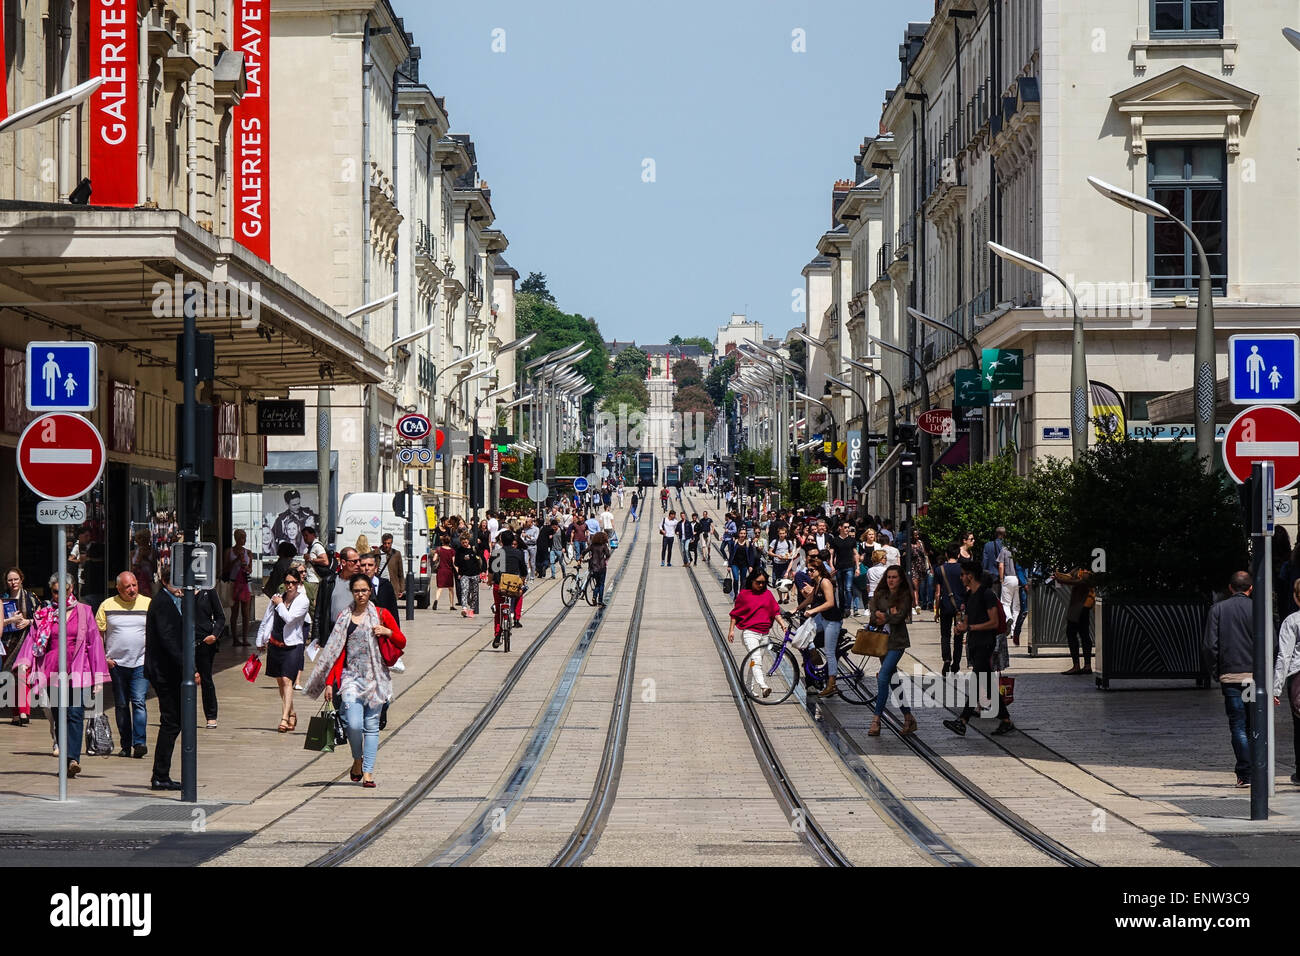 Tramway and trams in Tours, France Stock Photo